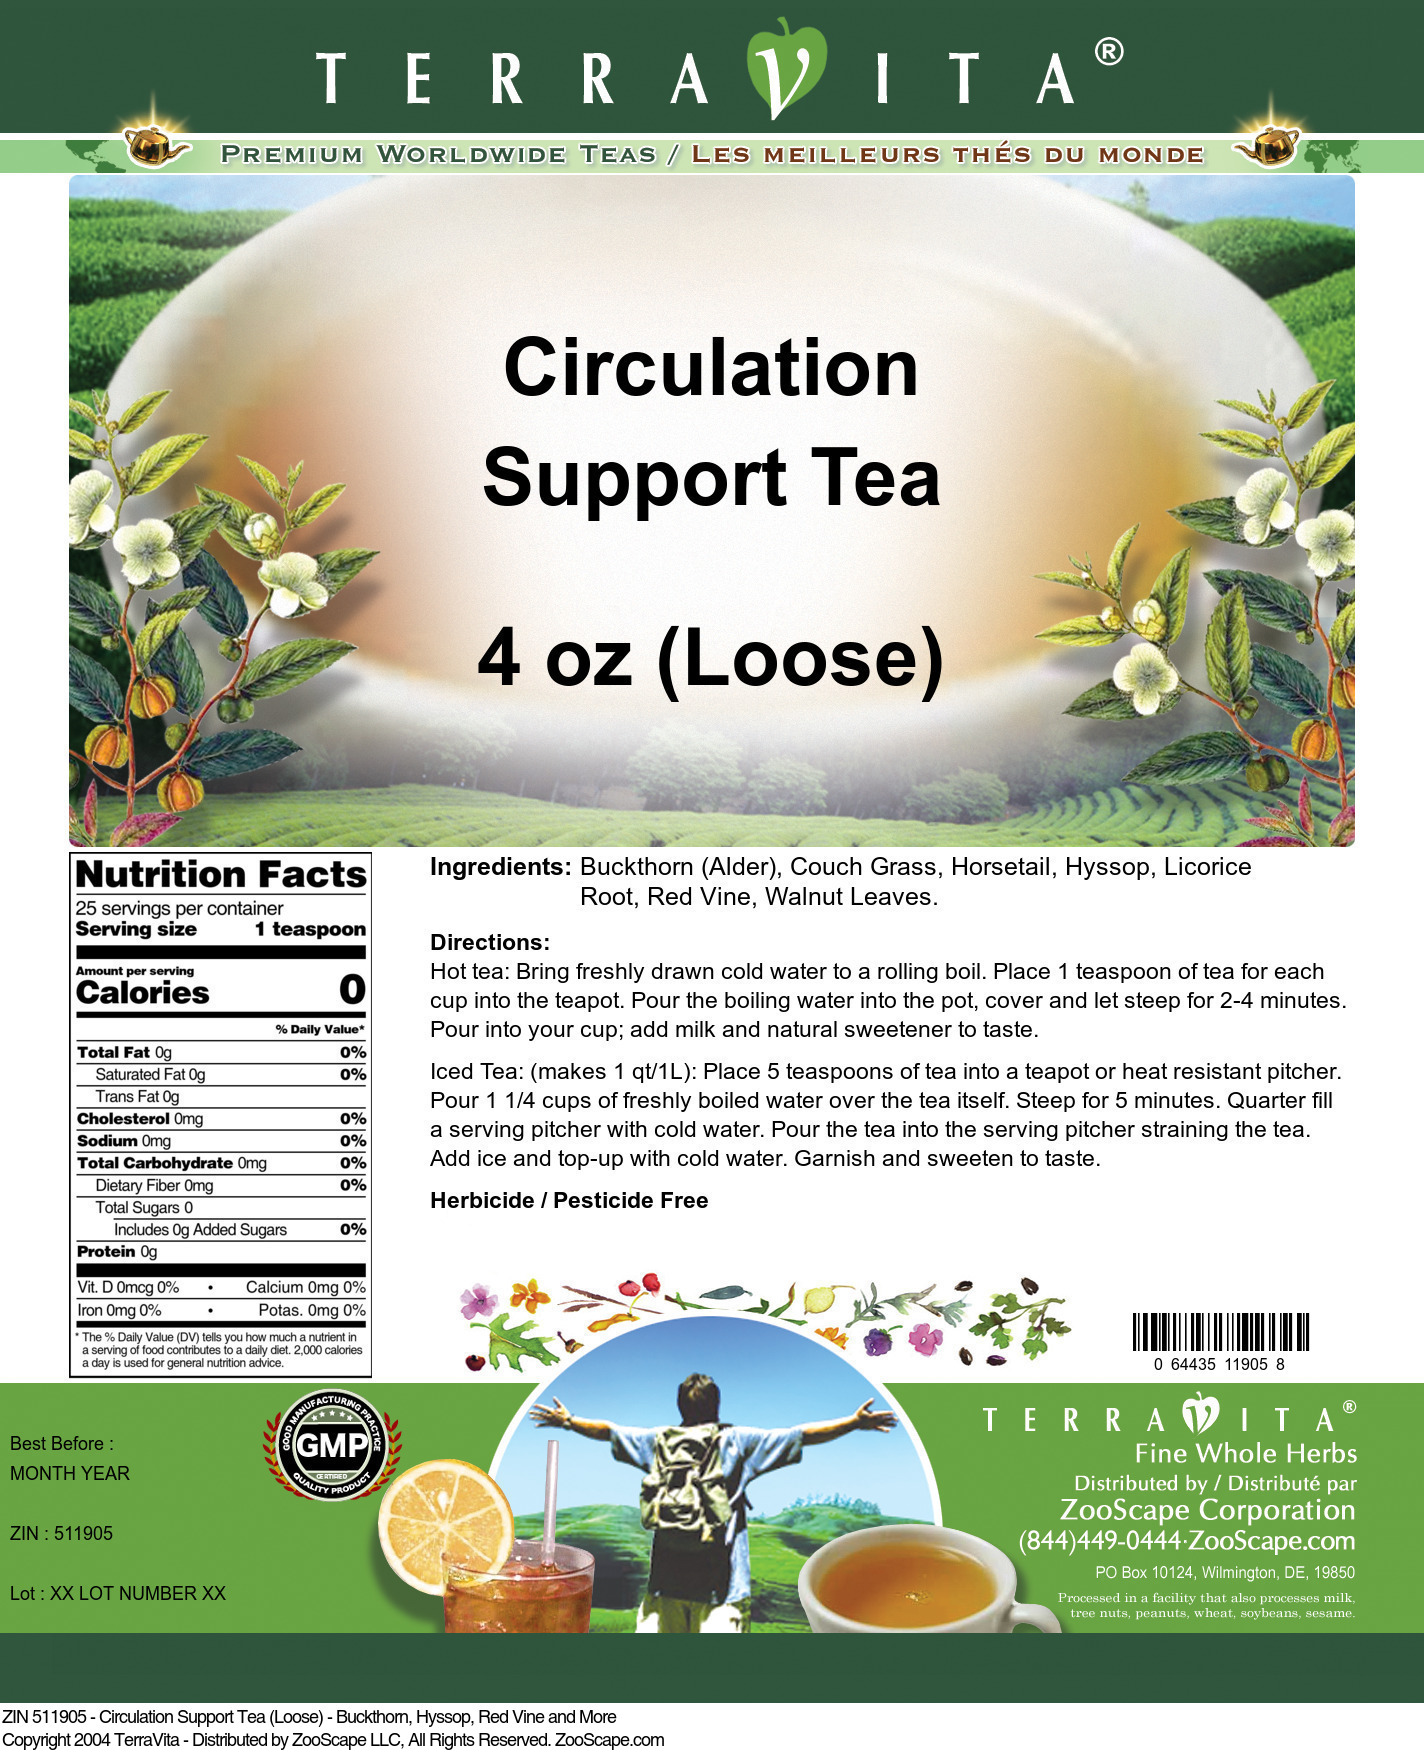 Circulation Support Tea (Loose) - Buckthorn, Hyssop, Red Vine and More - Label